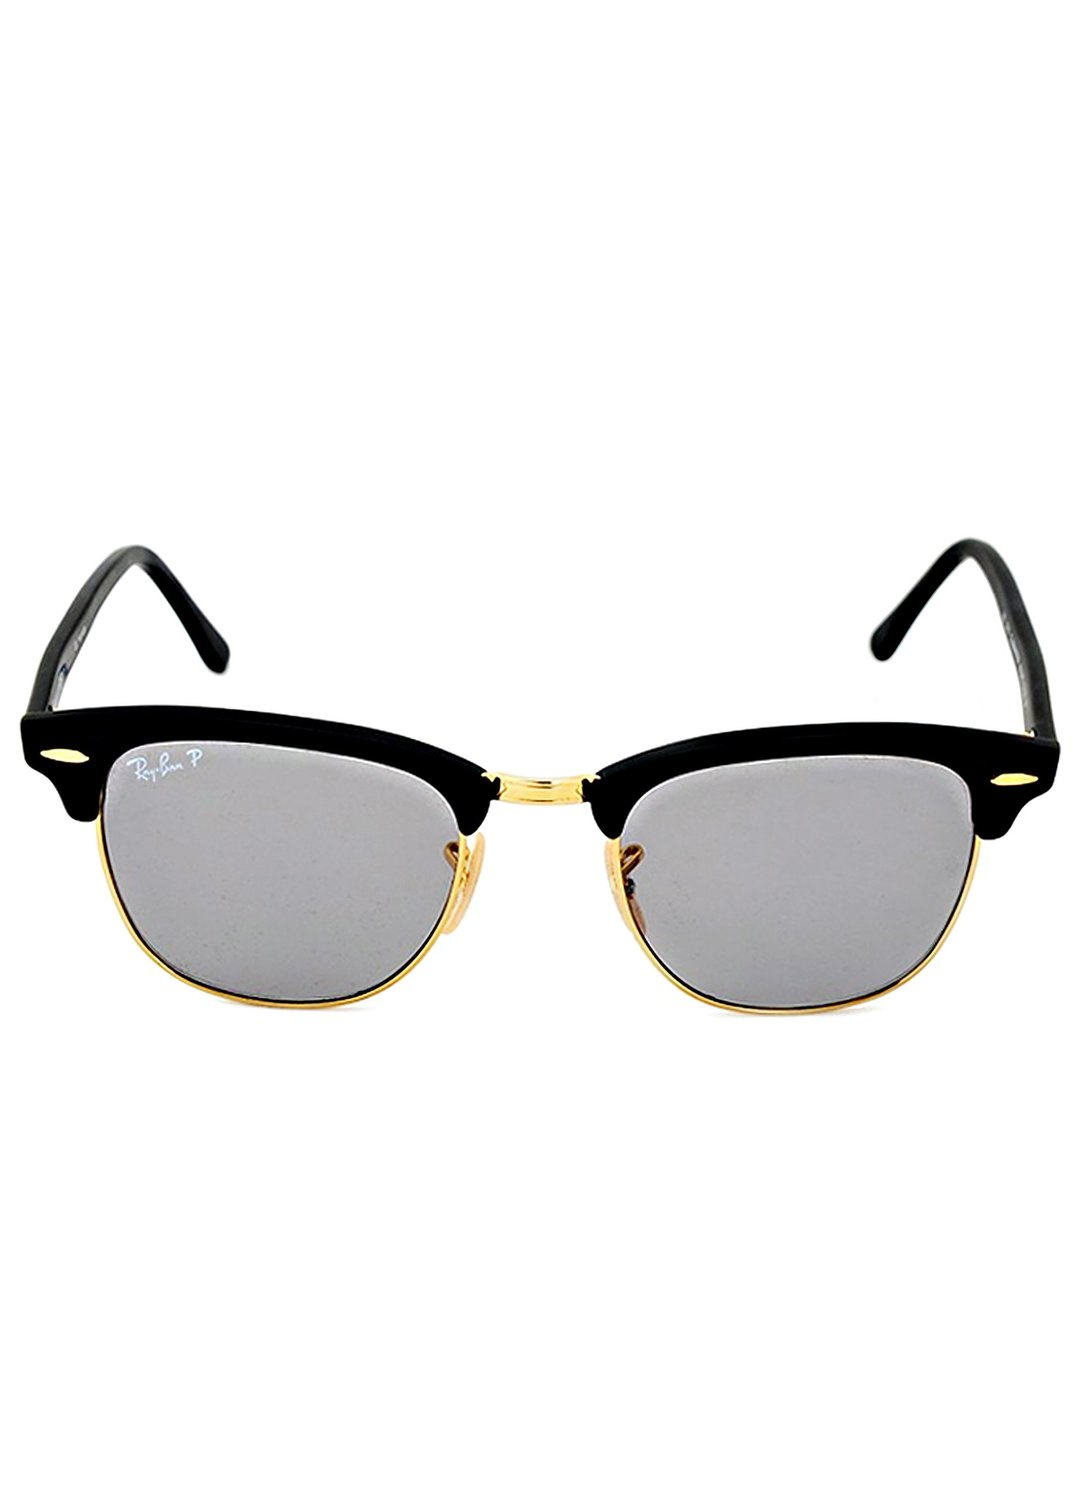 ray ban clubmaster classic amazon